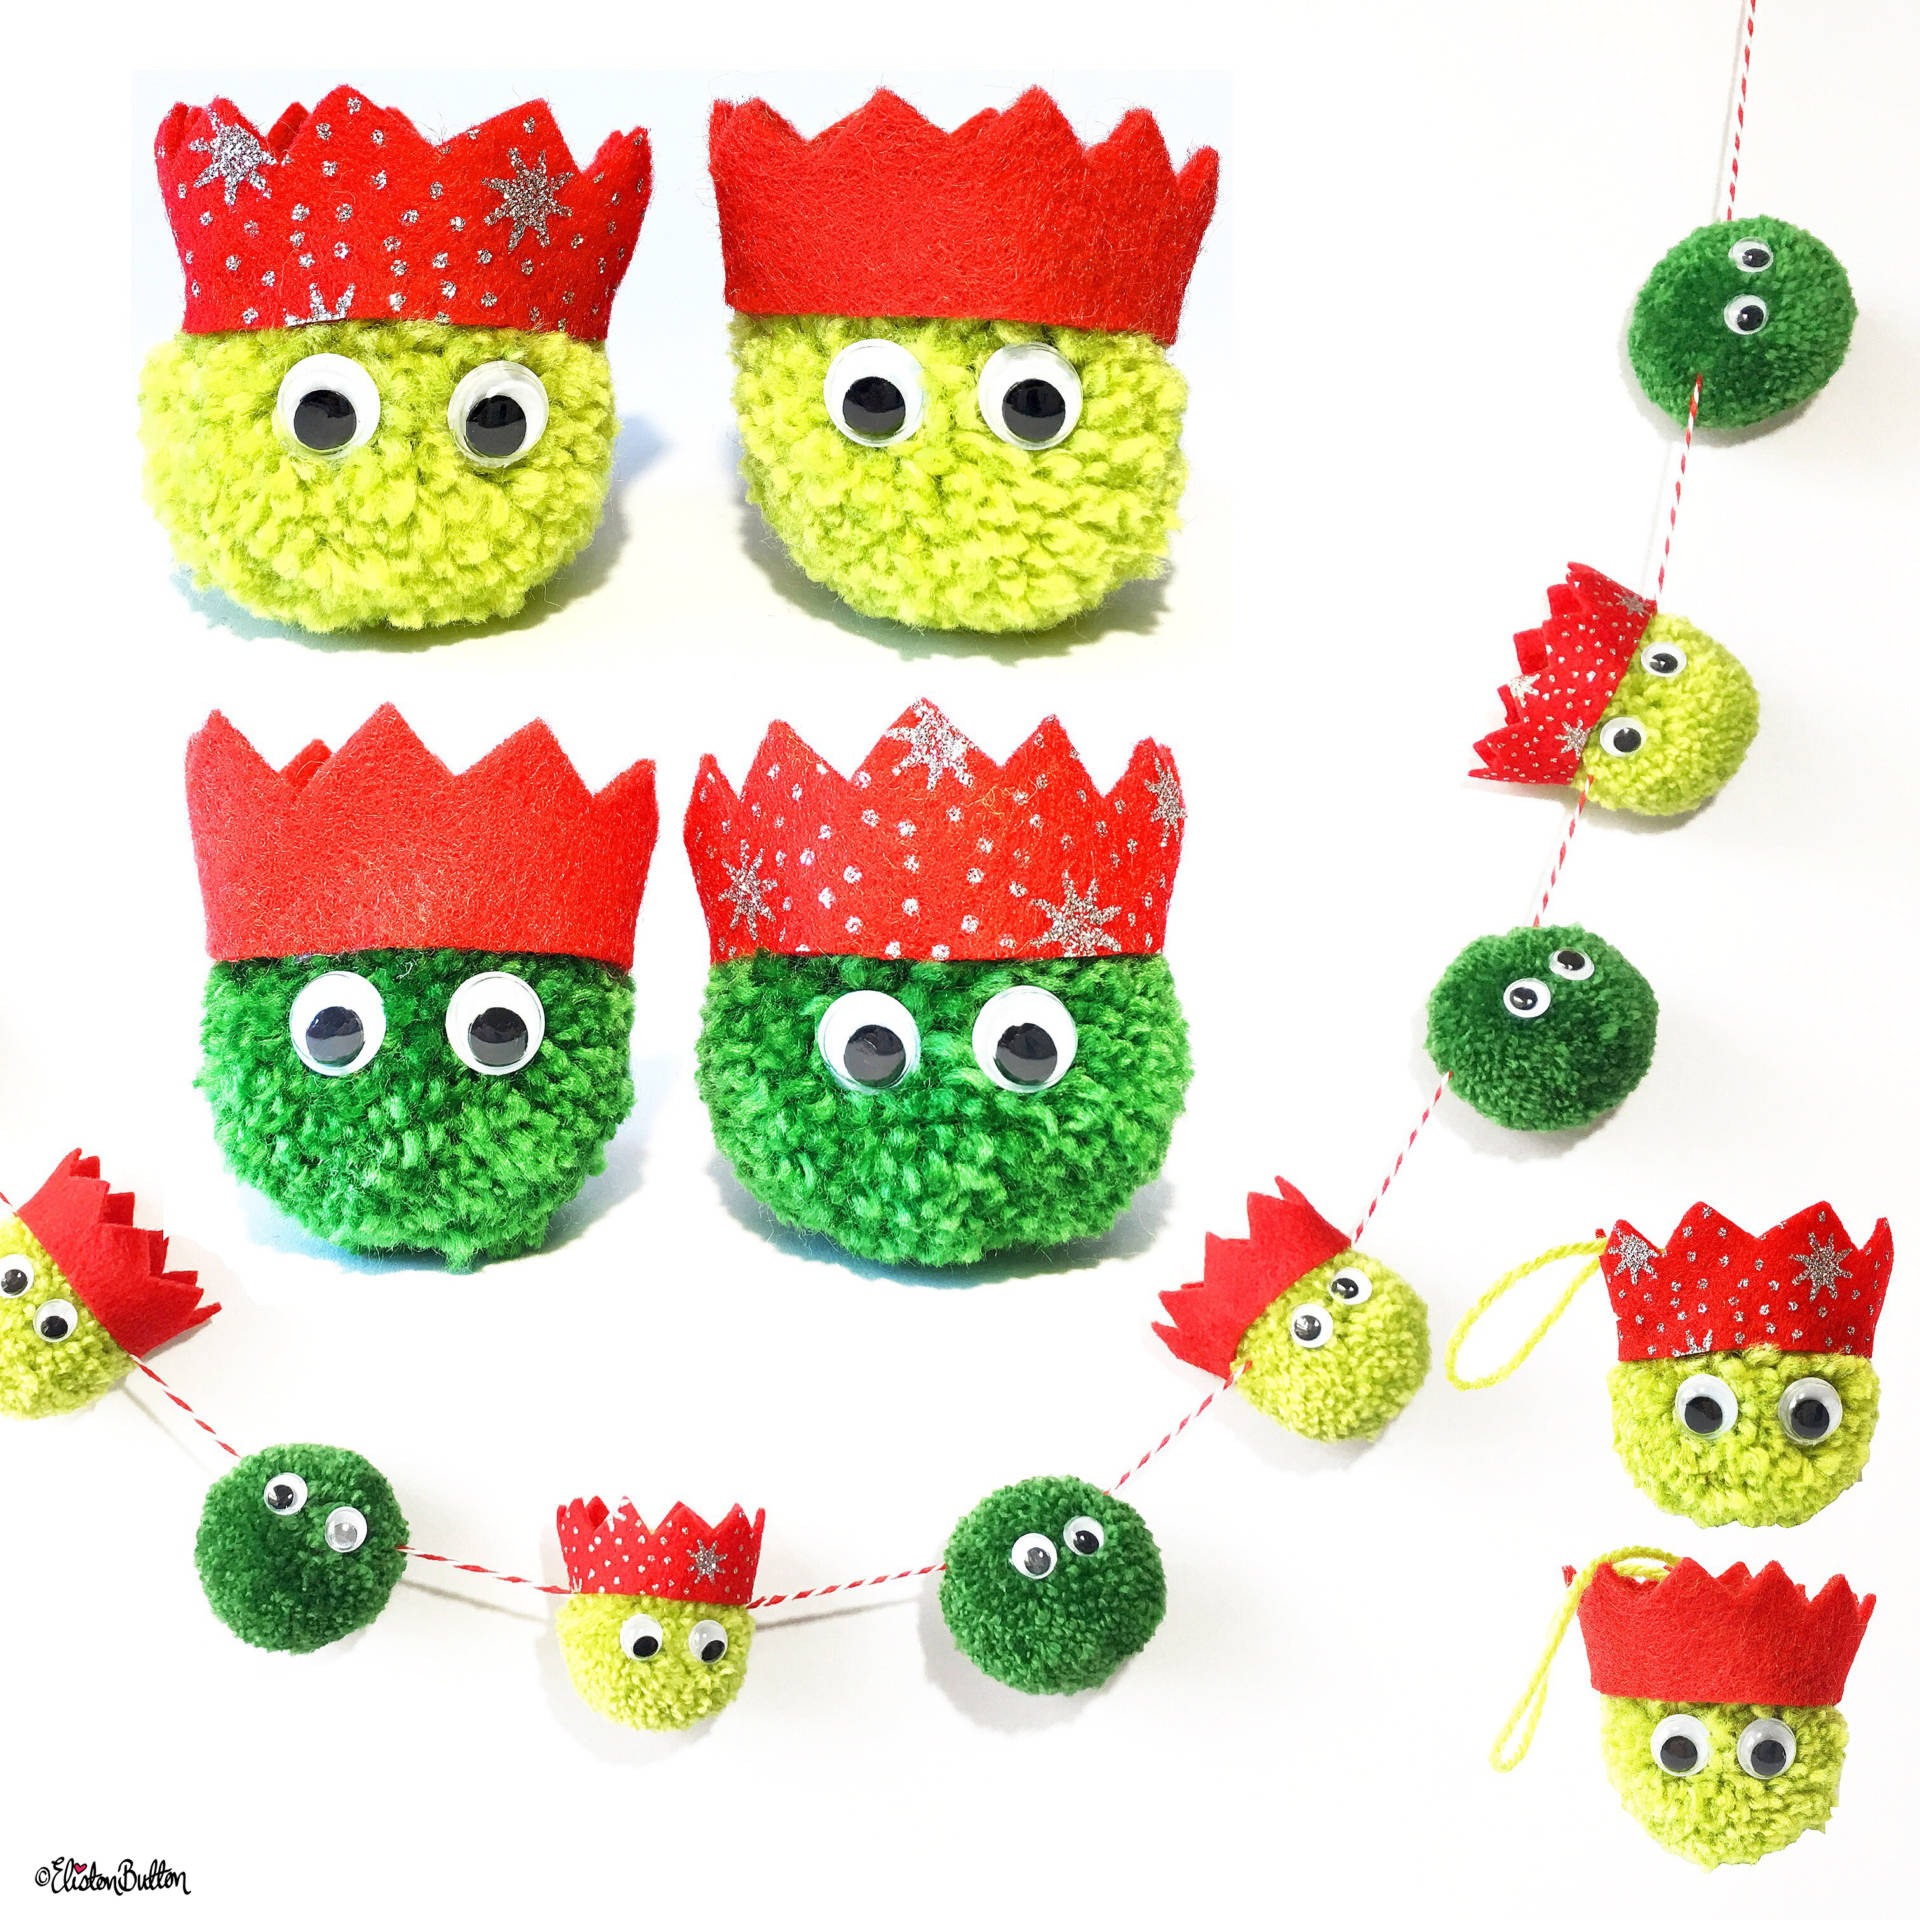 Christmas Sprout Individual Decorations, Pack of 4 Decorations and Garland by Eliston Button on Etsy - For the Love of…Christmas at www.elistonbutton.com - Eliston Button - That Crafty Kid – Art, Design, Craft & Adventure.